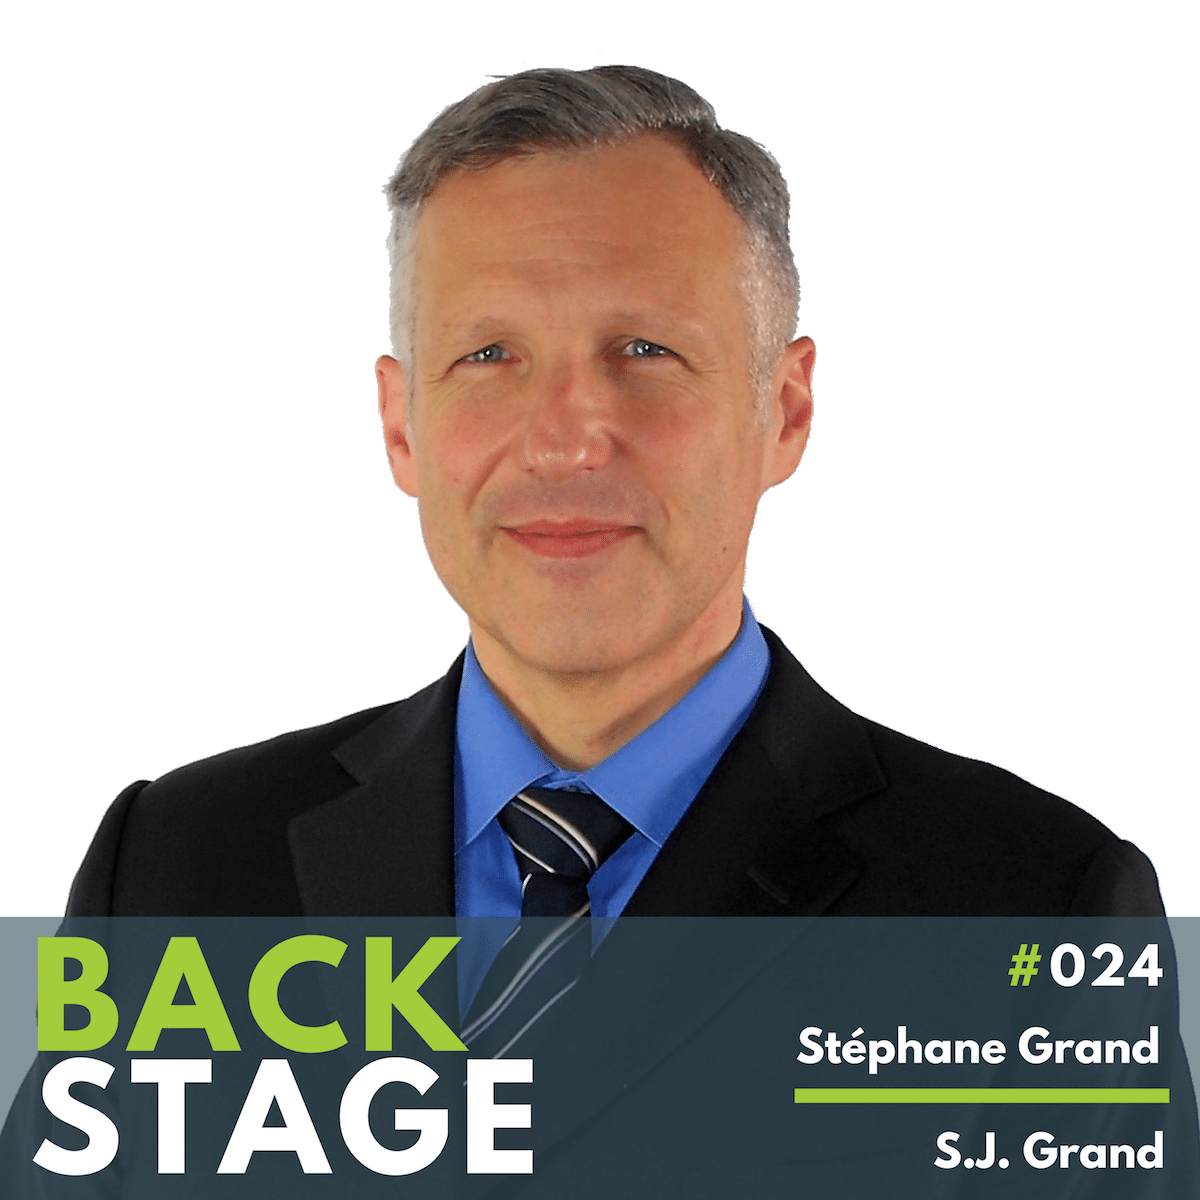 BACKSTAGE #024 - Stephane Grand, S.J. Grand copy